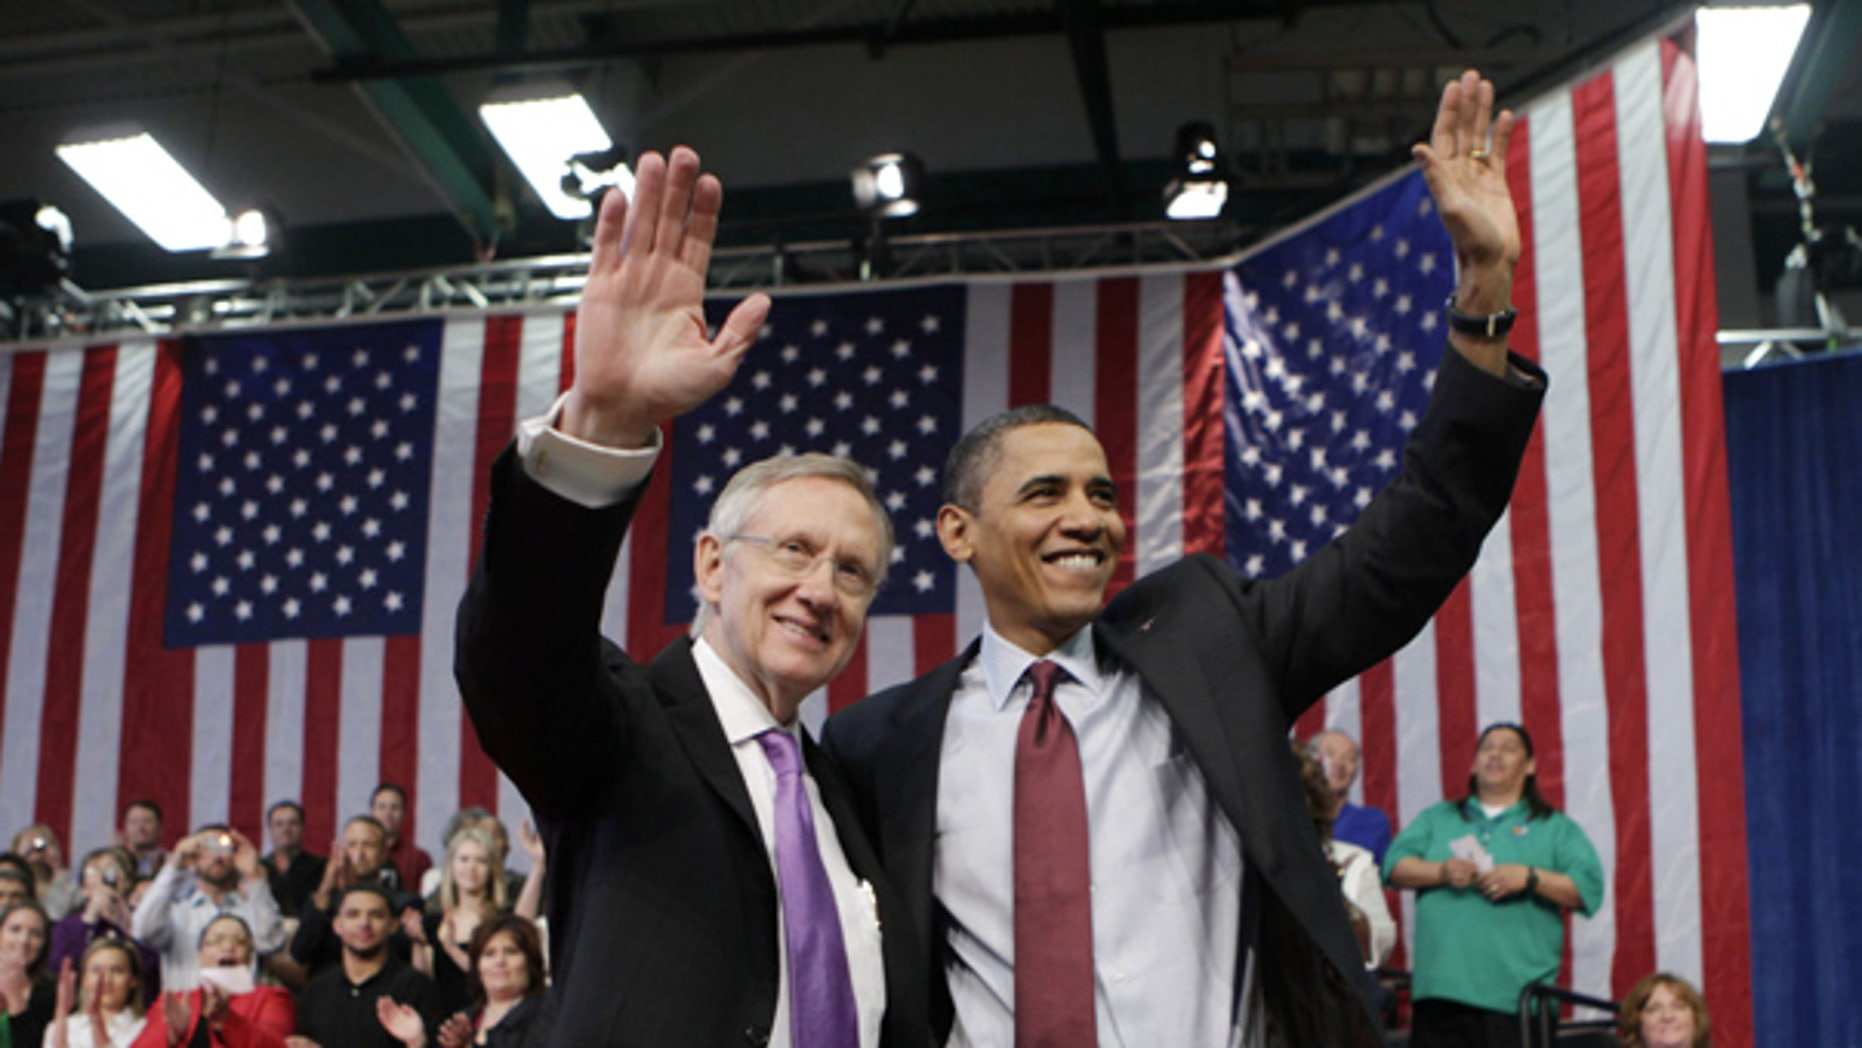 Feb. 19: President Obama and Senate Majority Leader Harry Reid wave following a town hall meeting in Henderson, Nev. (AP)